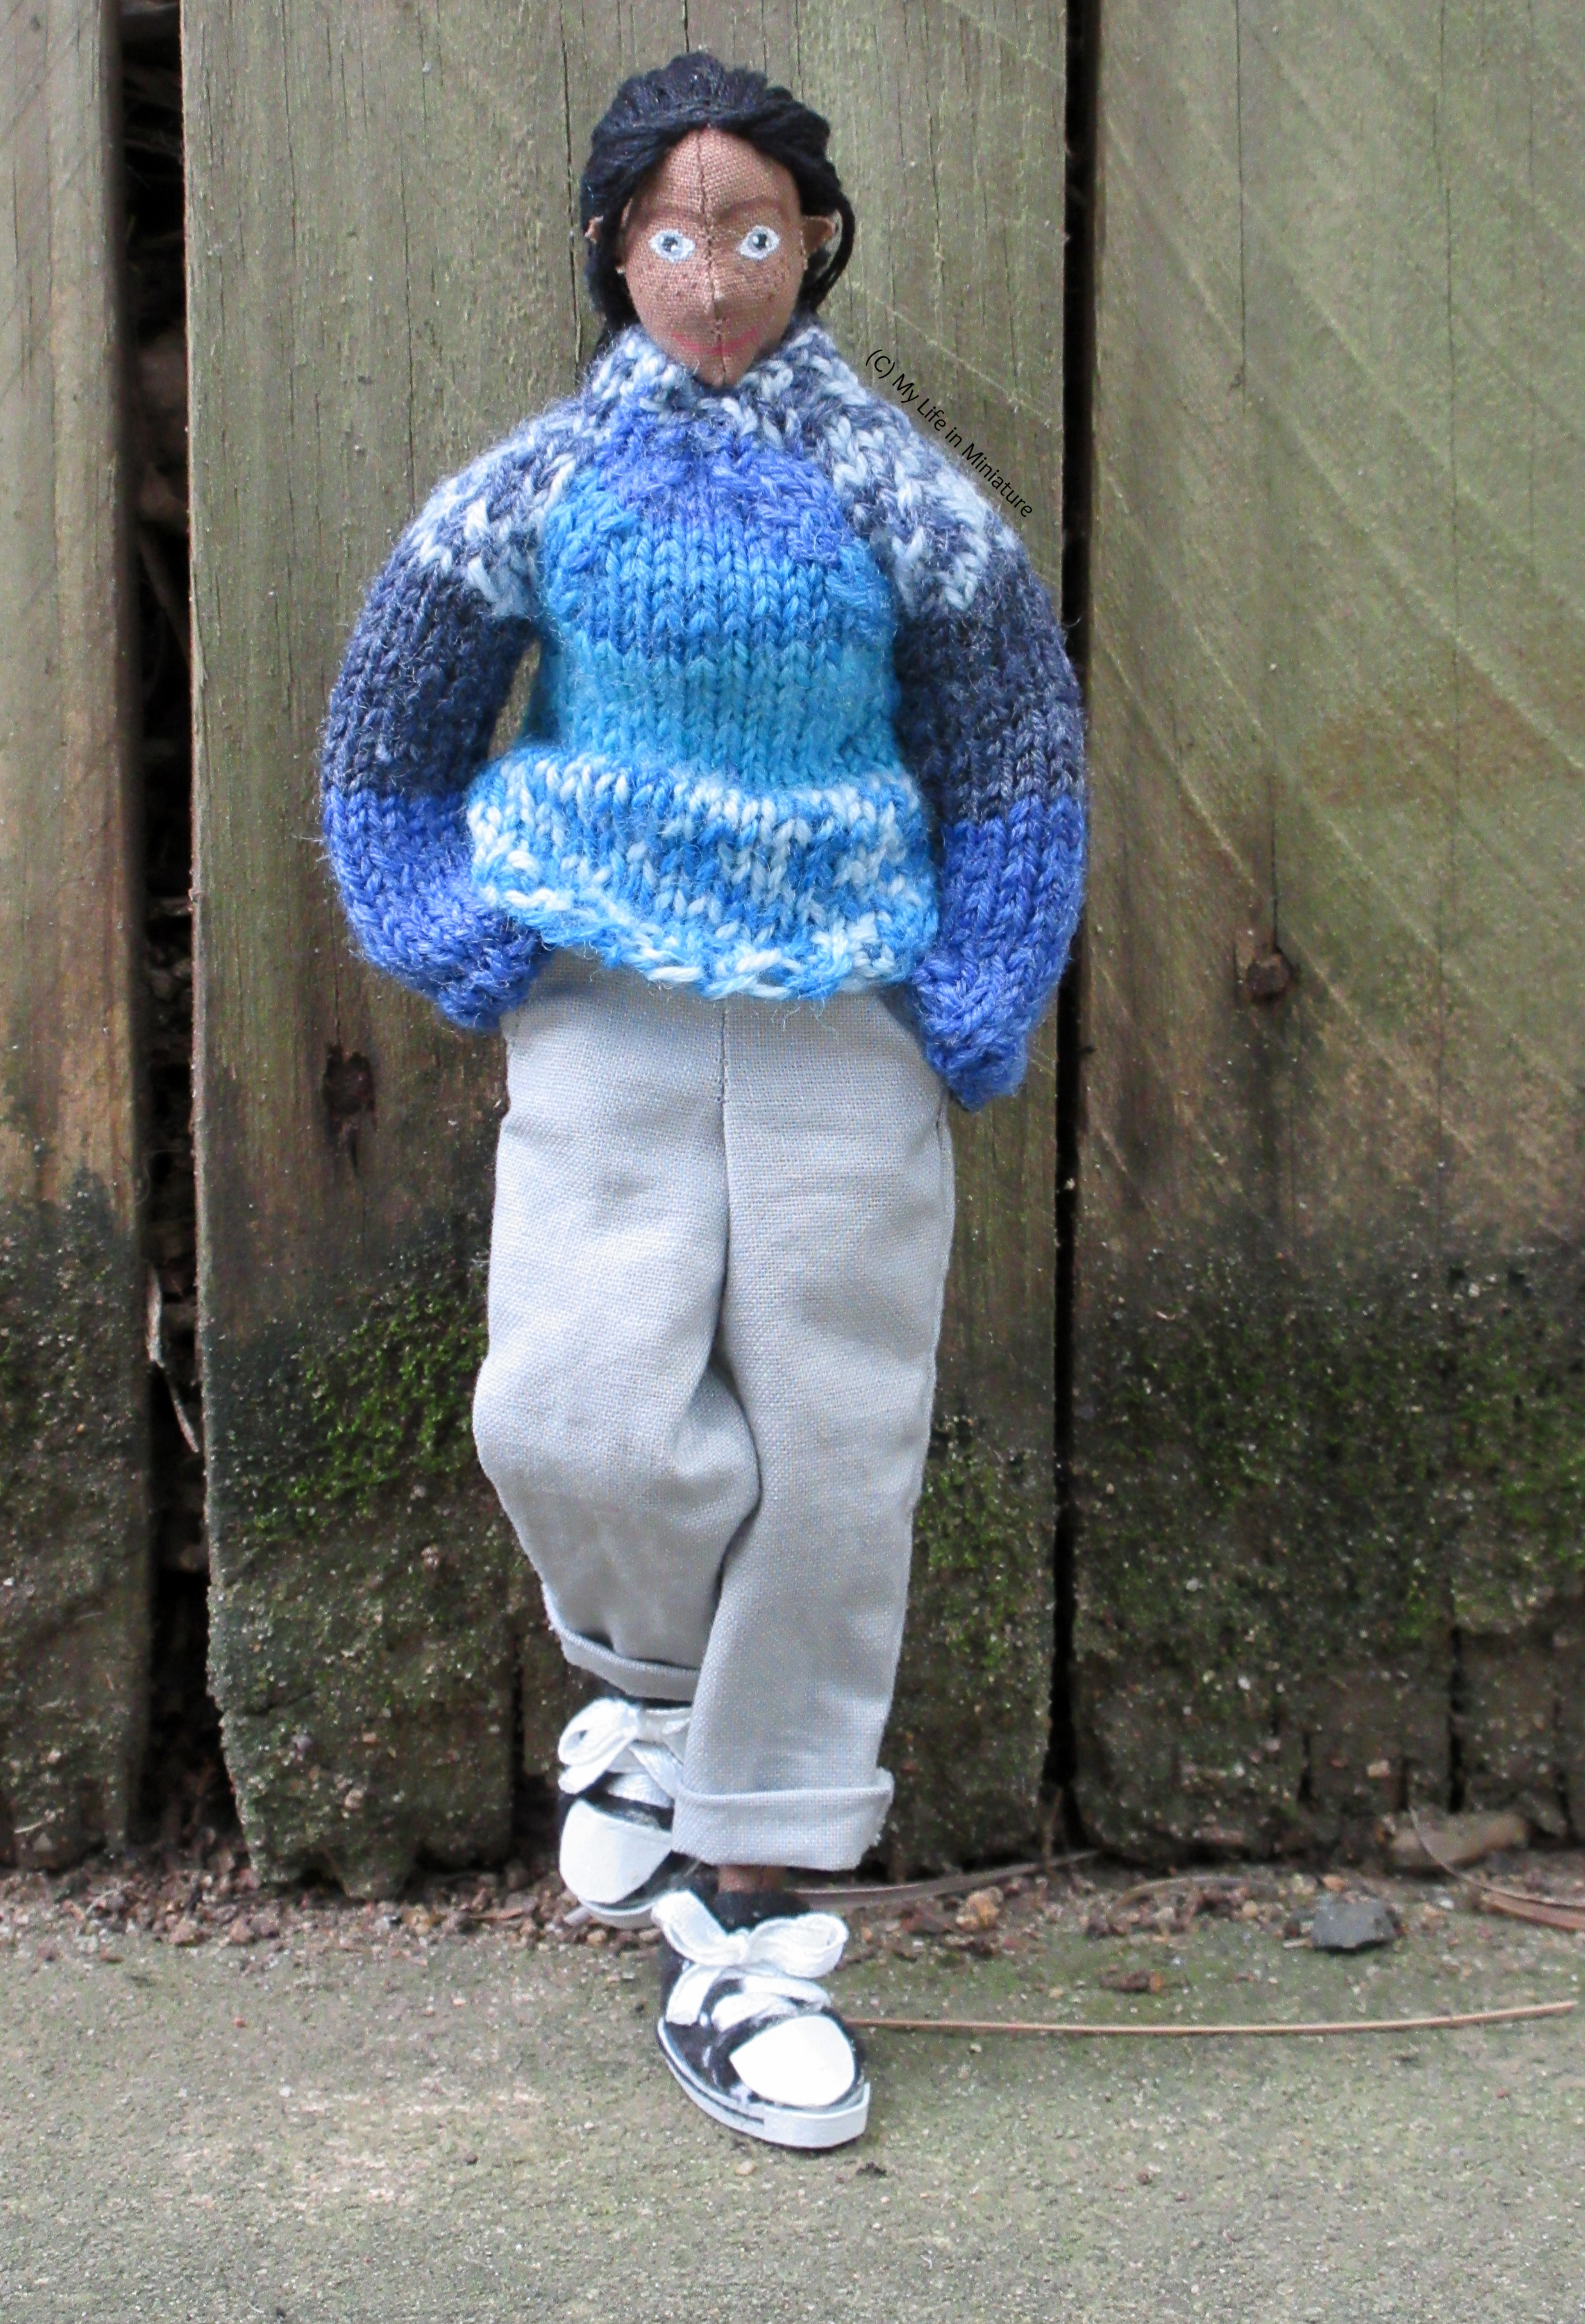 Petra stands against a fence, hands in pockets and foot propped up. She wears the blue jumper and loose grey pants with black Converse high-tops. She's looking at the camera.